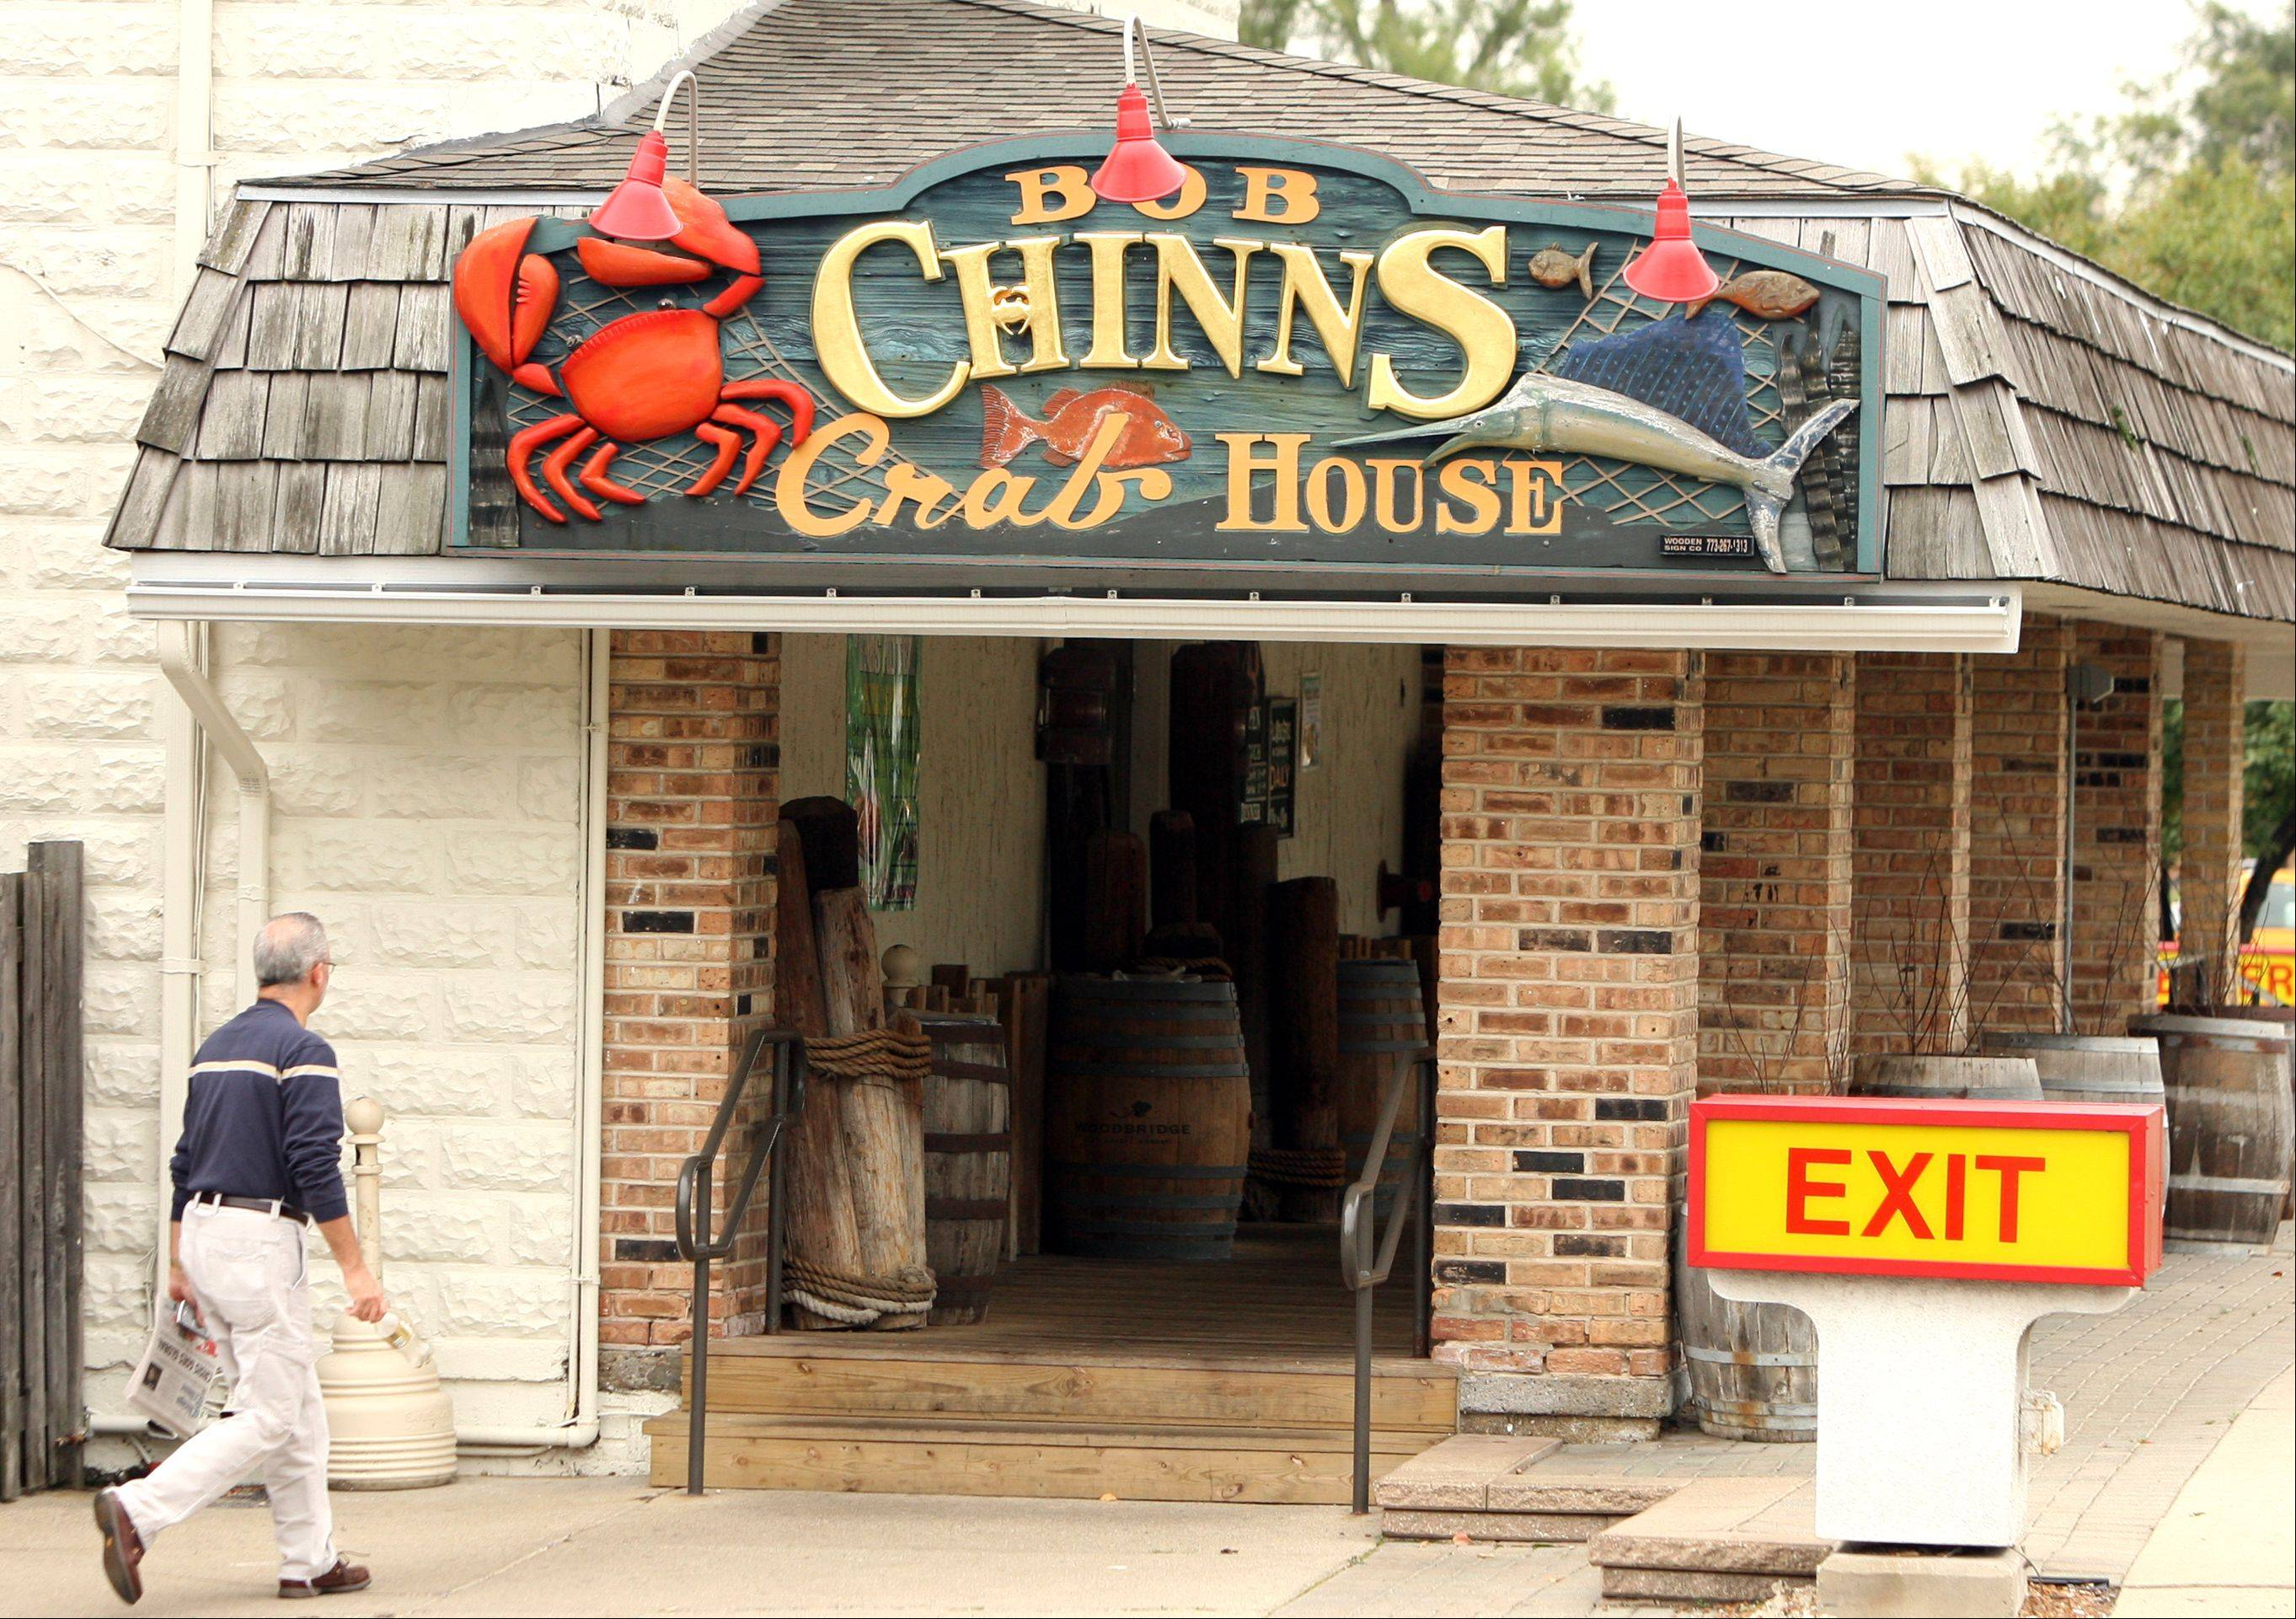 Bob Chinn's Crab House, on Milwaukee Avenue in Wheeling, has been named America's top-grossing restaurant.